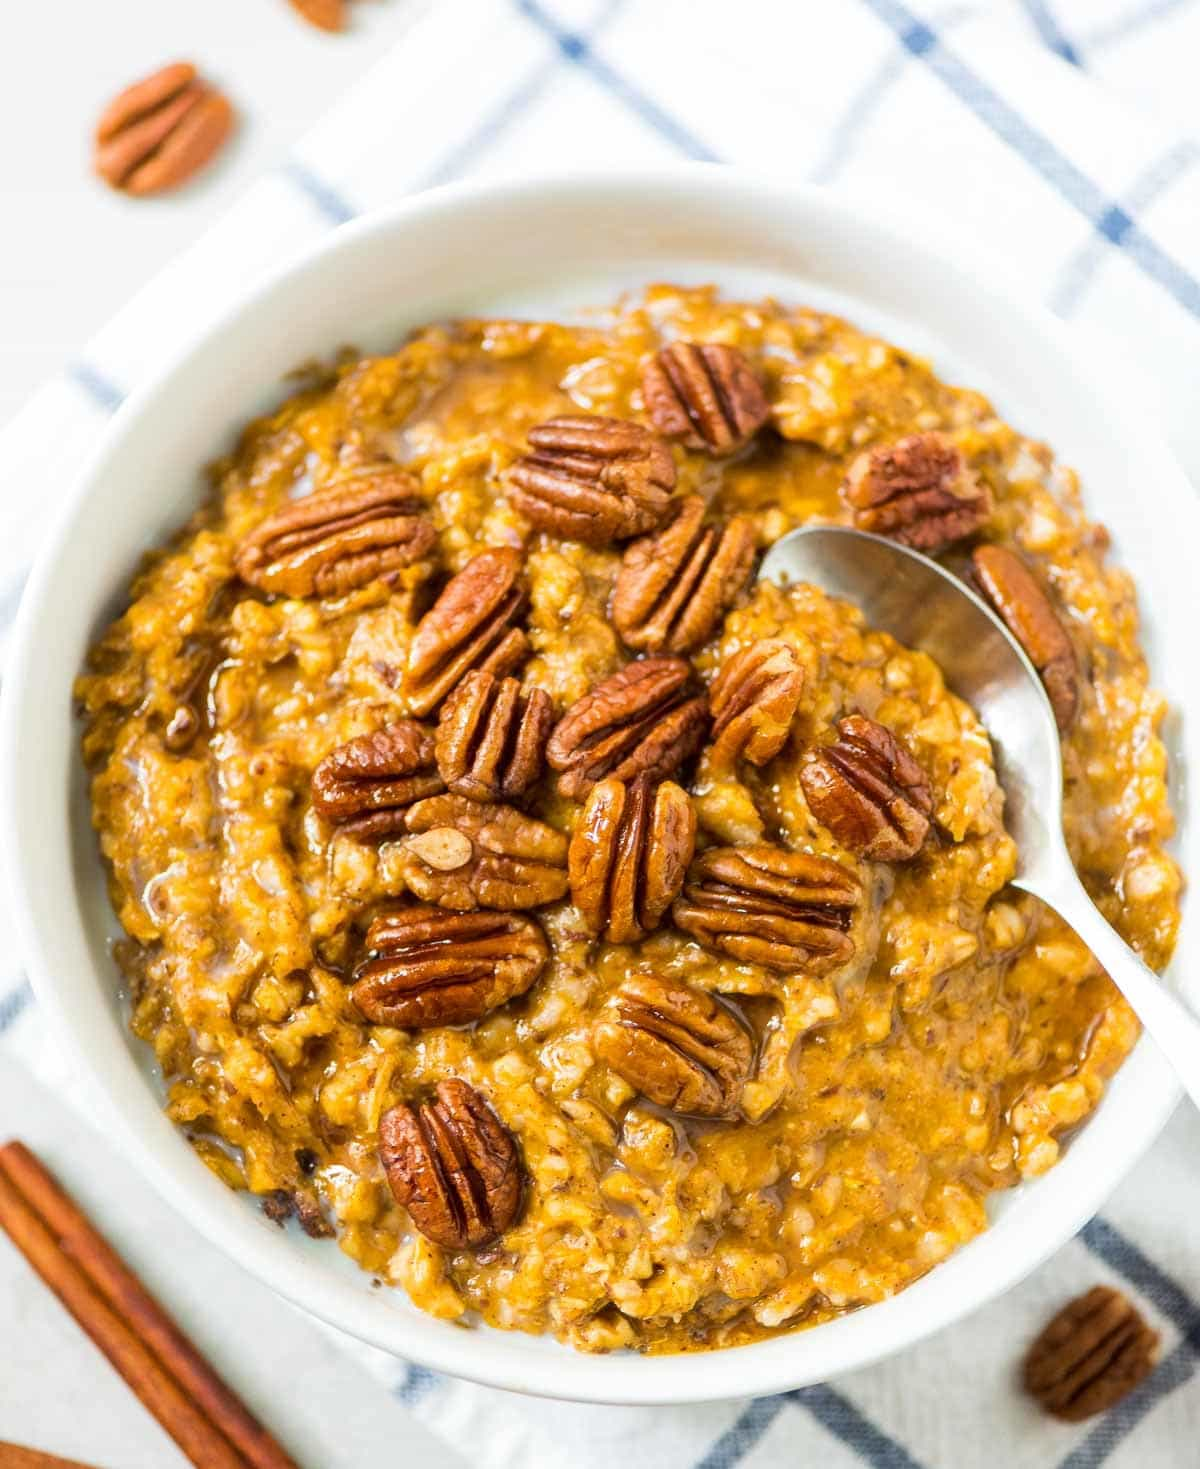 Pumpkin Overnight Steel Cuts. EASY, healthy recipe that's ready to go as soon as you wake up! Made with pumpkin, steel cut oats, and lots of warm spices. @wellplated